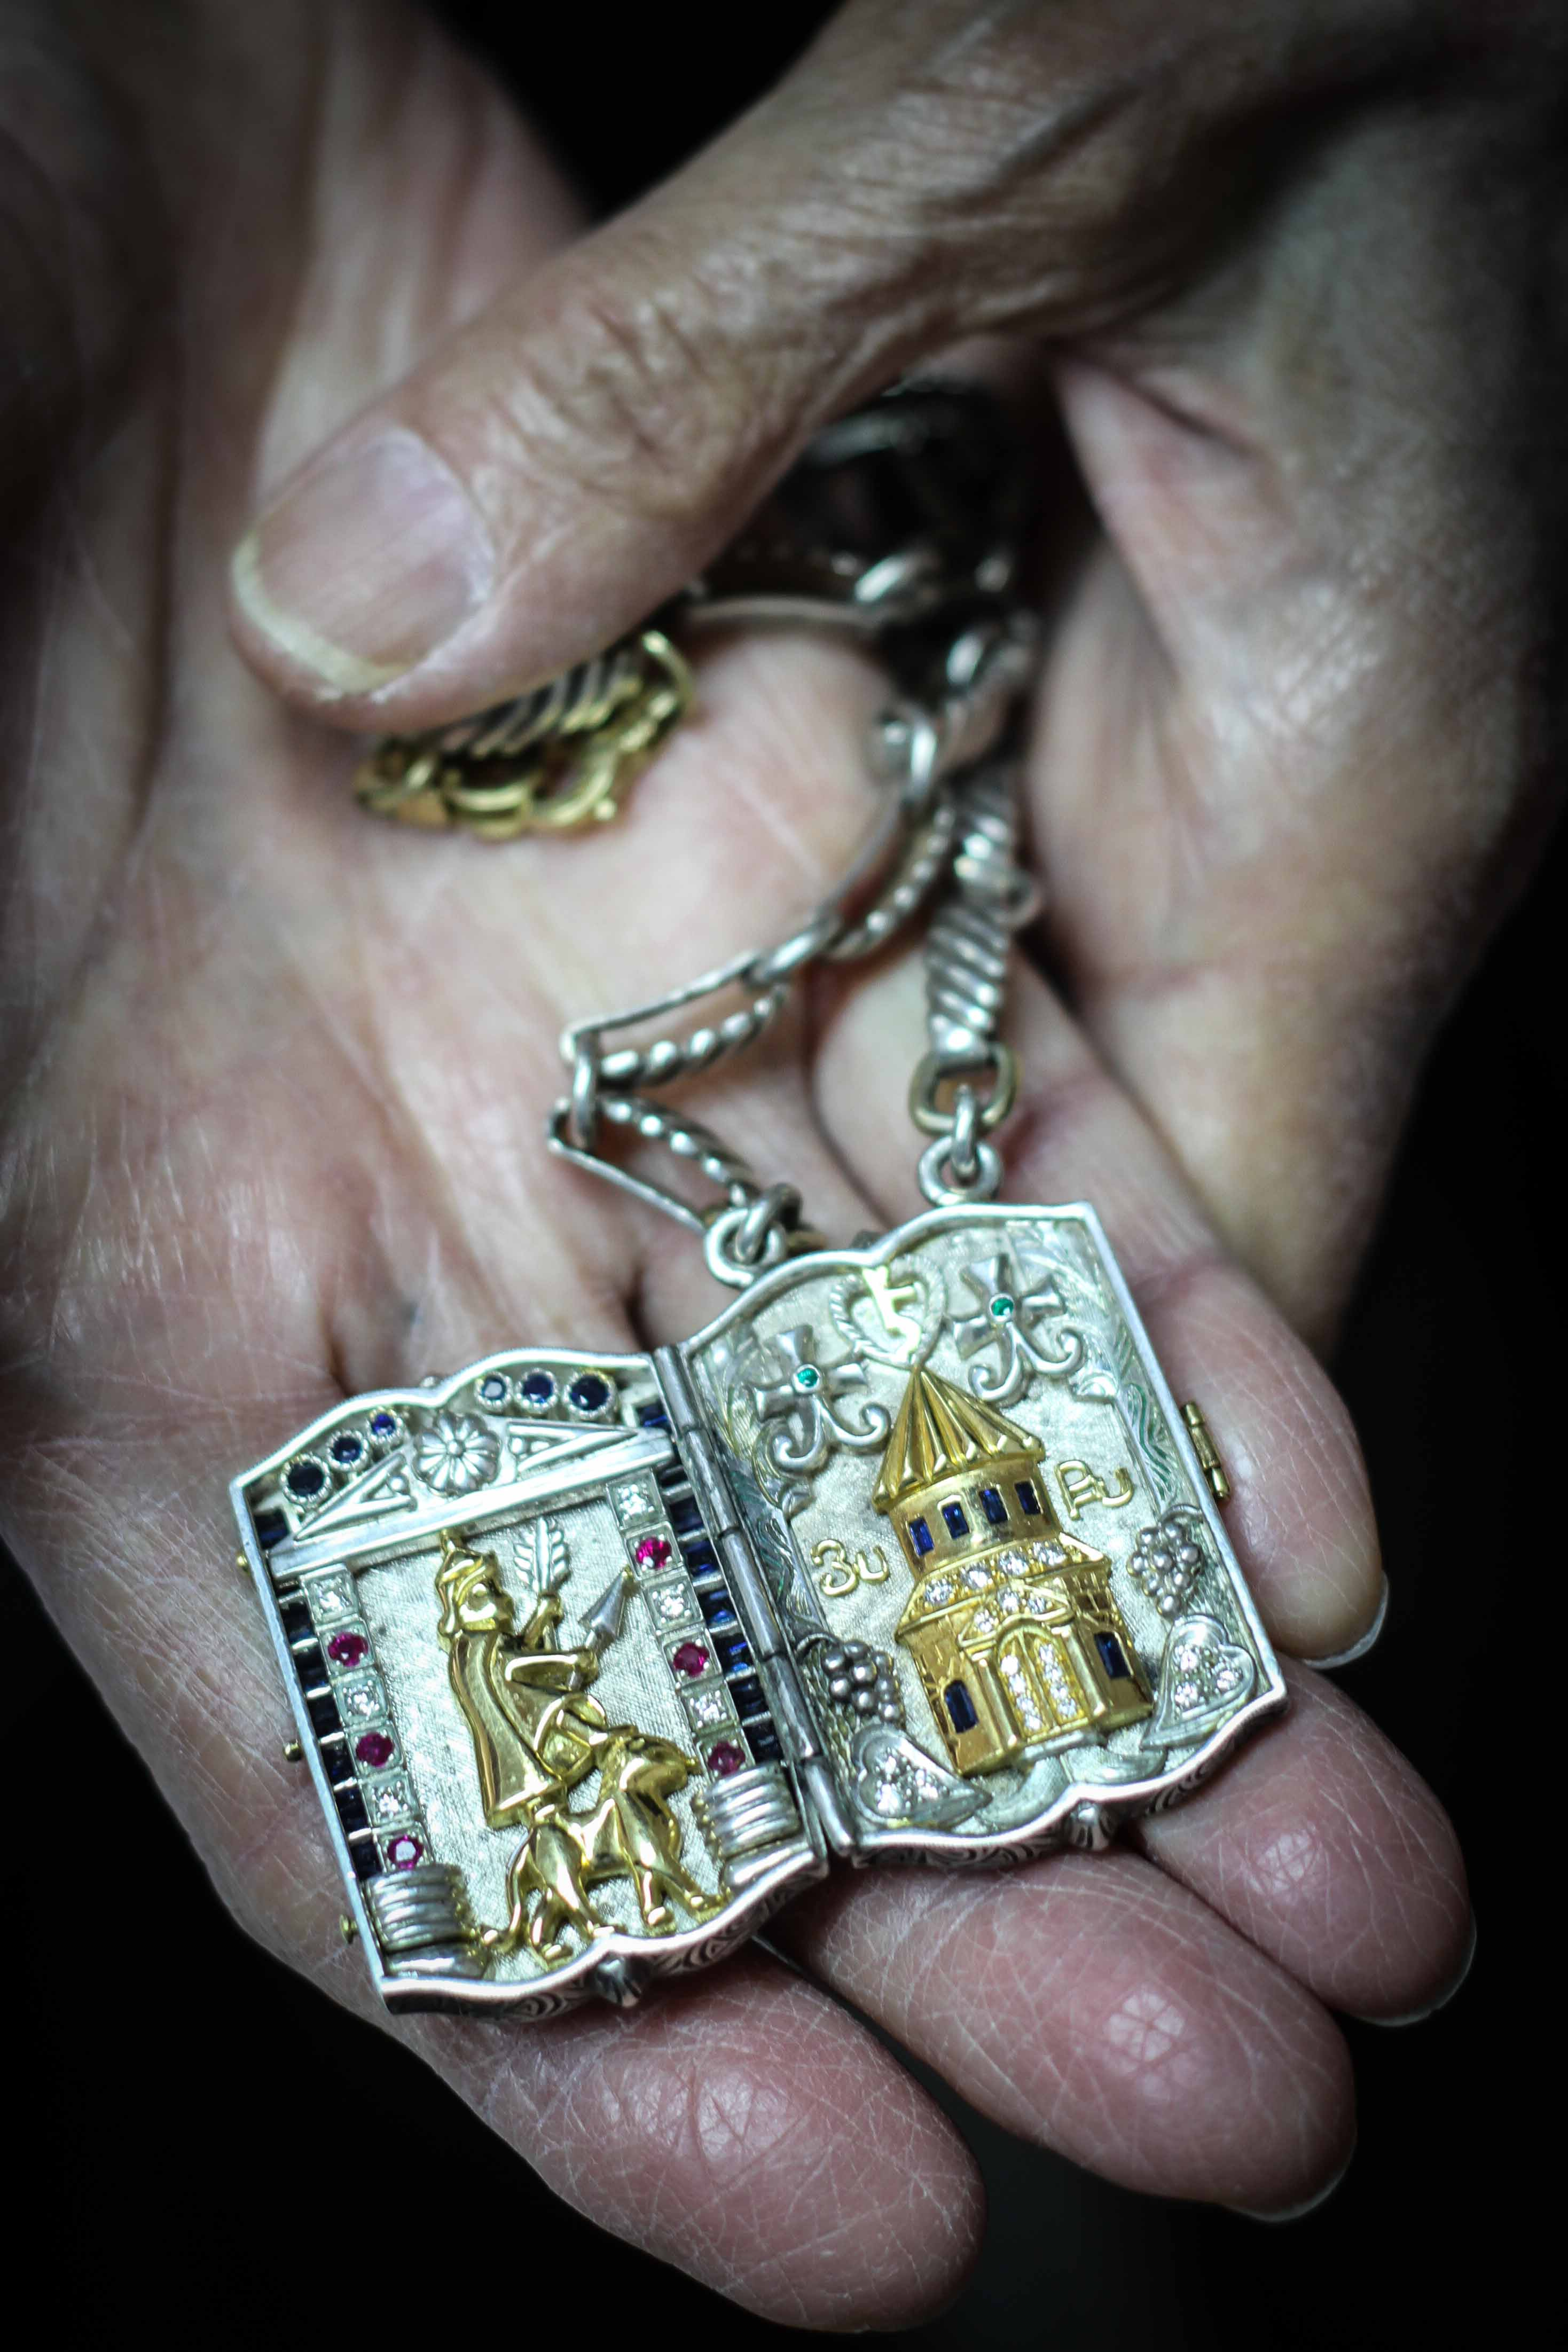 Master jeweler Hrayr Dserounian shows one of the recent pieces he has crafted, in Beirut, Lebanon, April 1, 2016. The iconography reflects Armenian history.